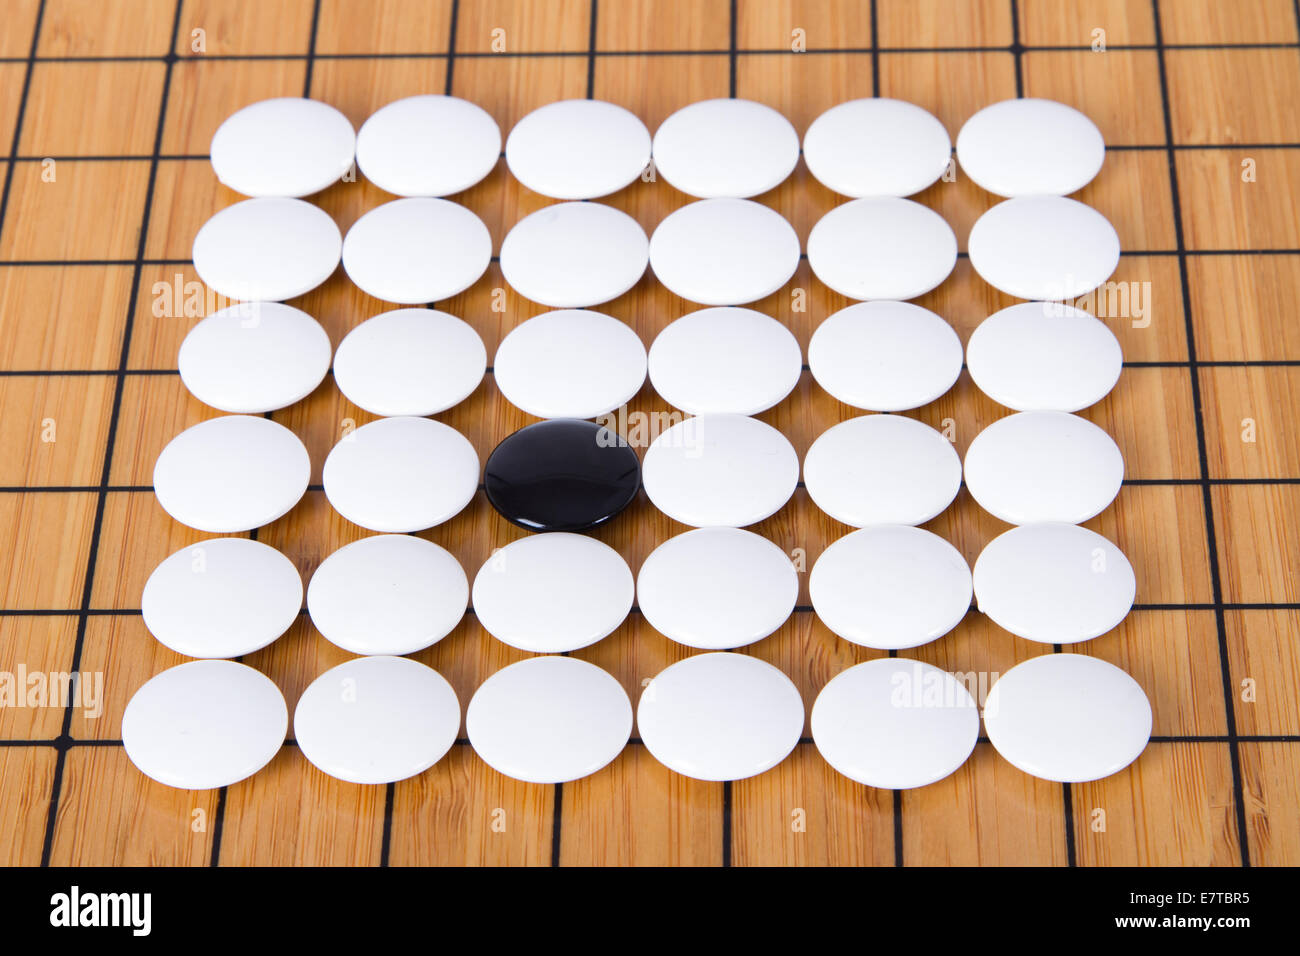 Black Stone Standing Out From White Pieces On Chinese Go Game Board